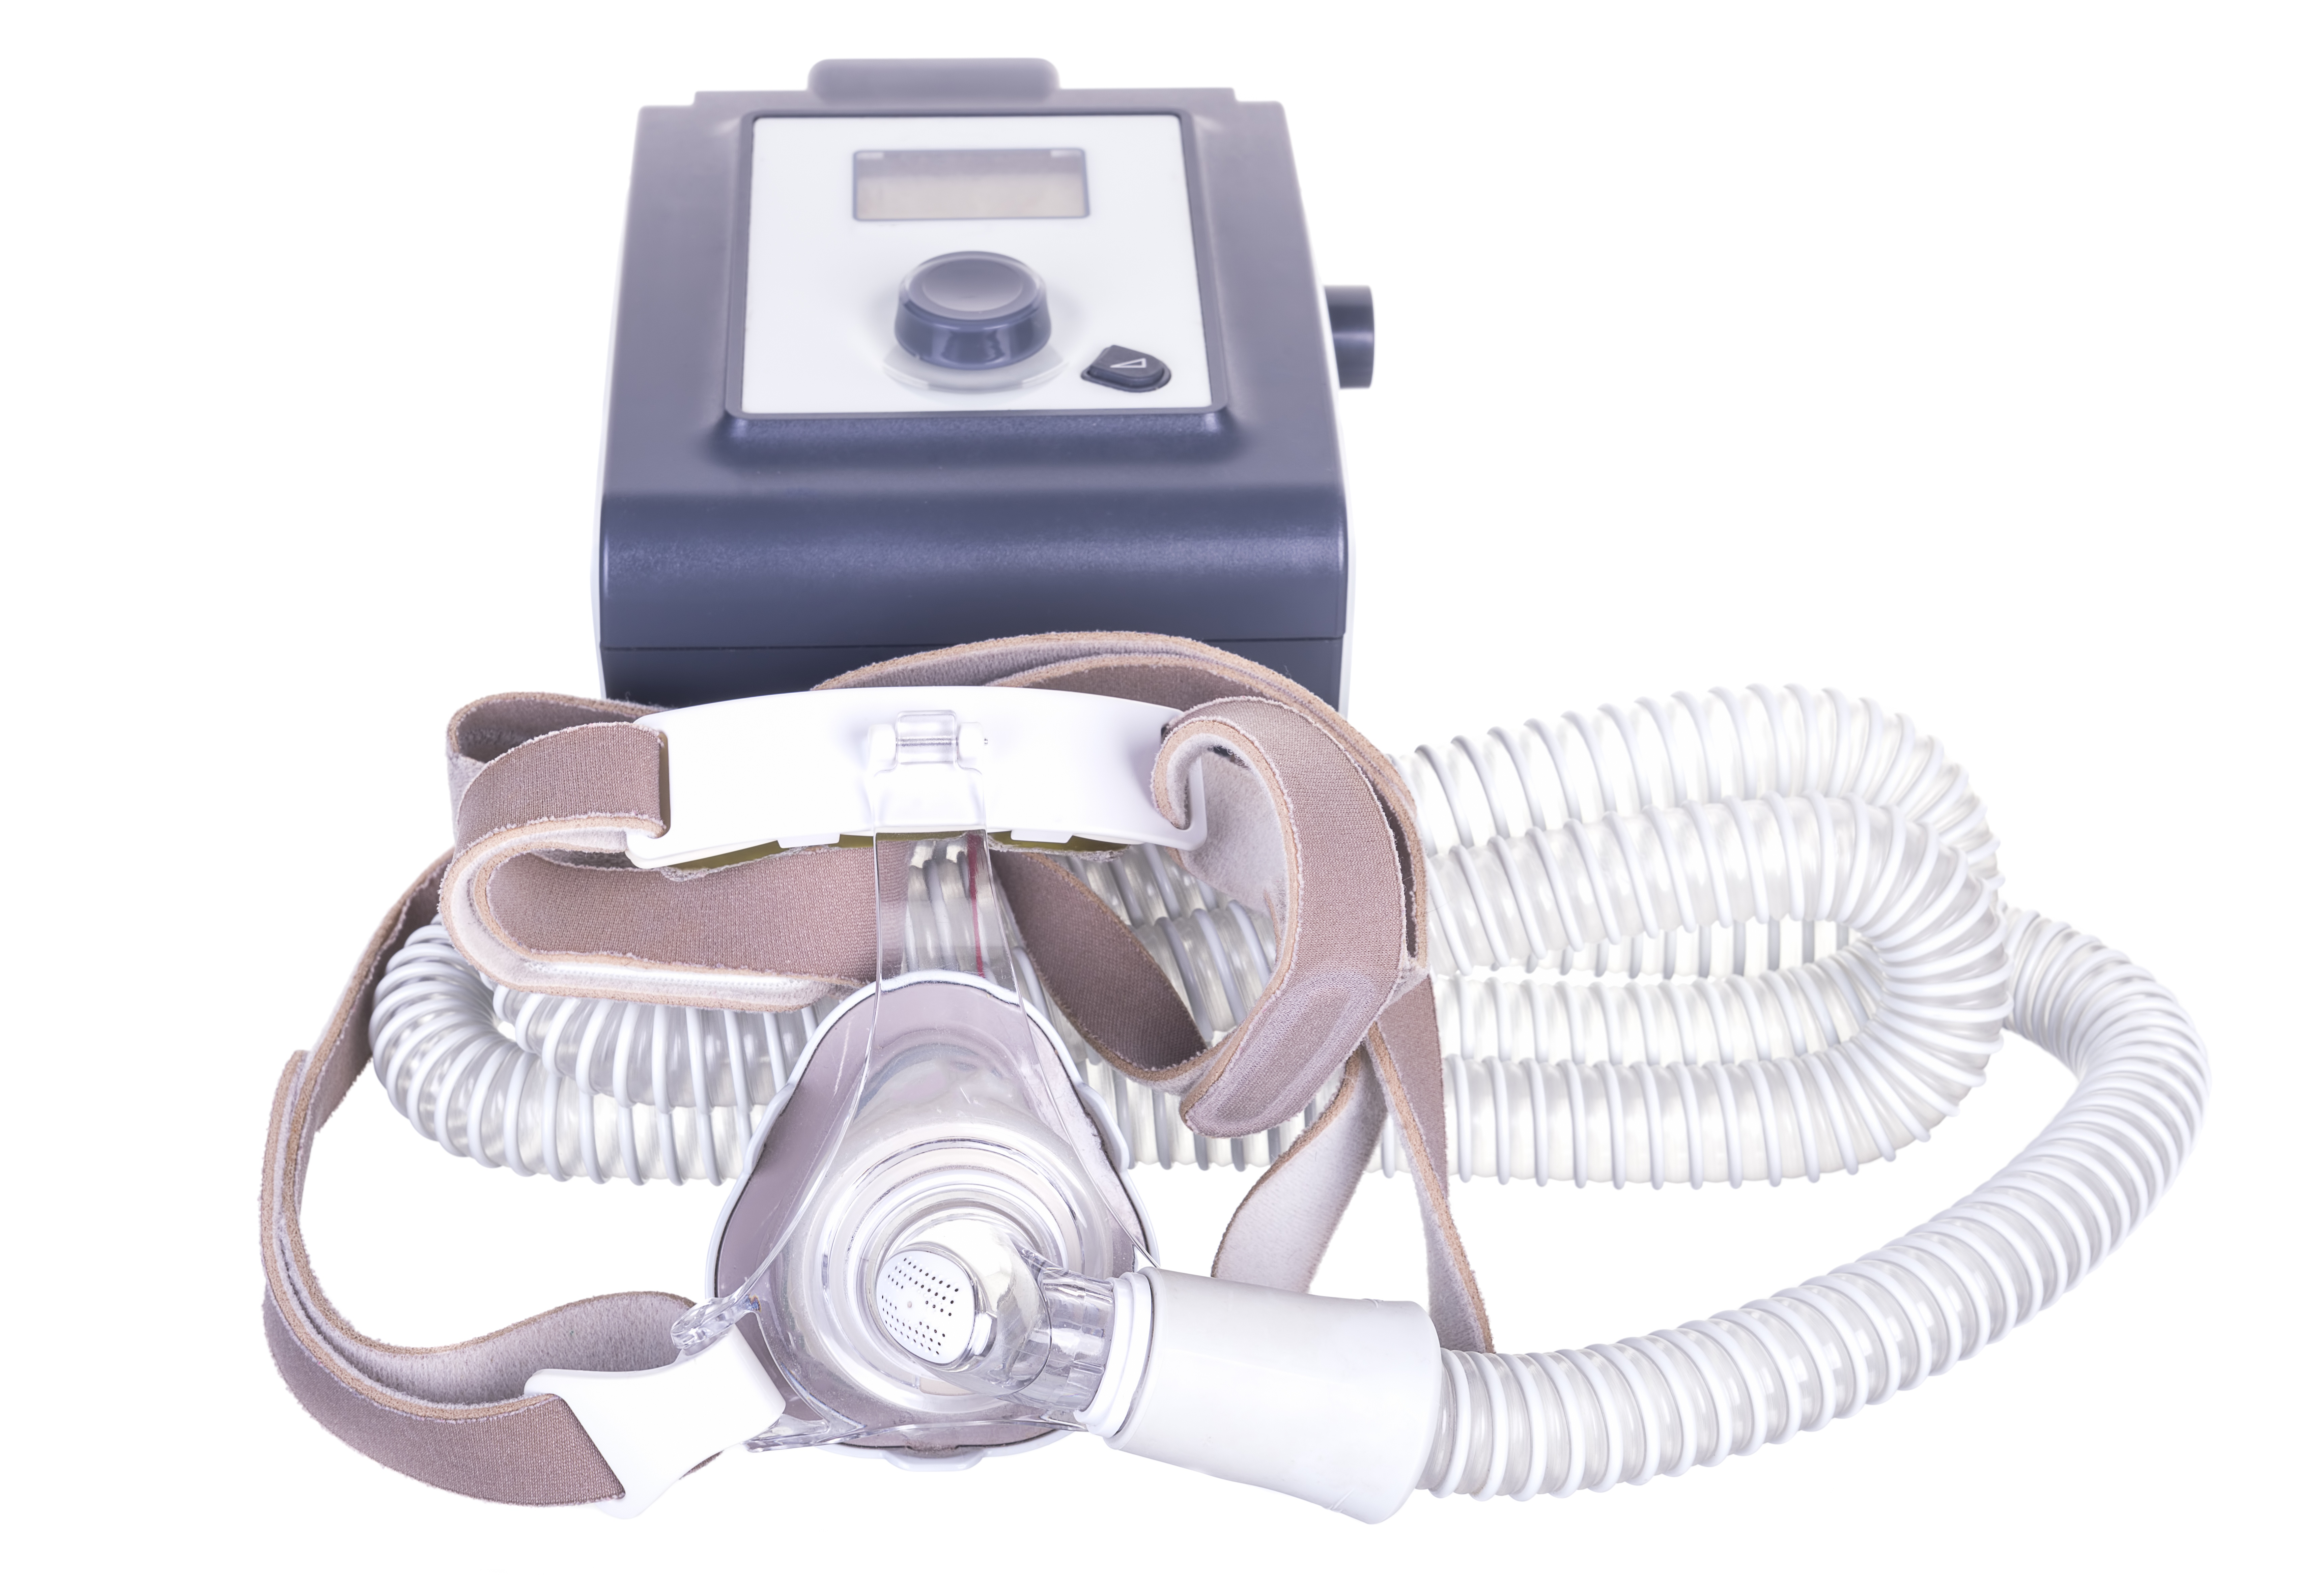 A CPAP machine is a delivery system for sleep apnea treatment using pressurized air to keep the upper airway open